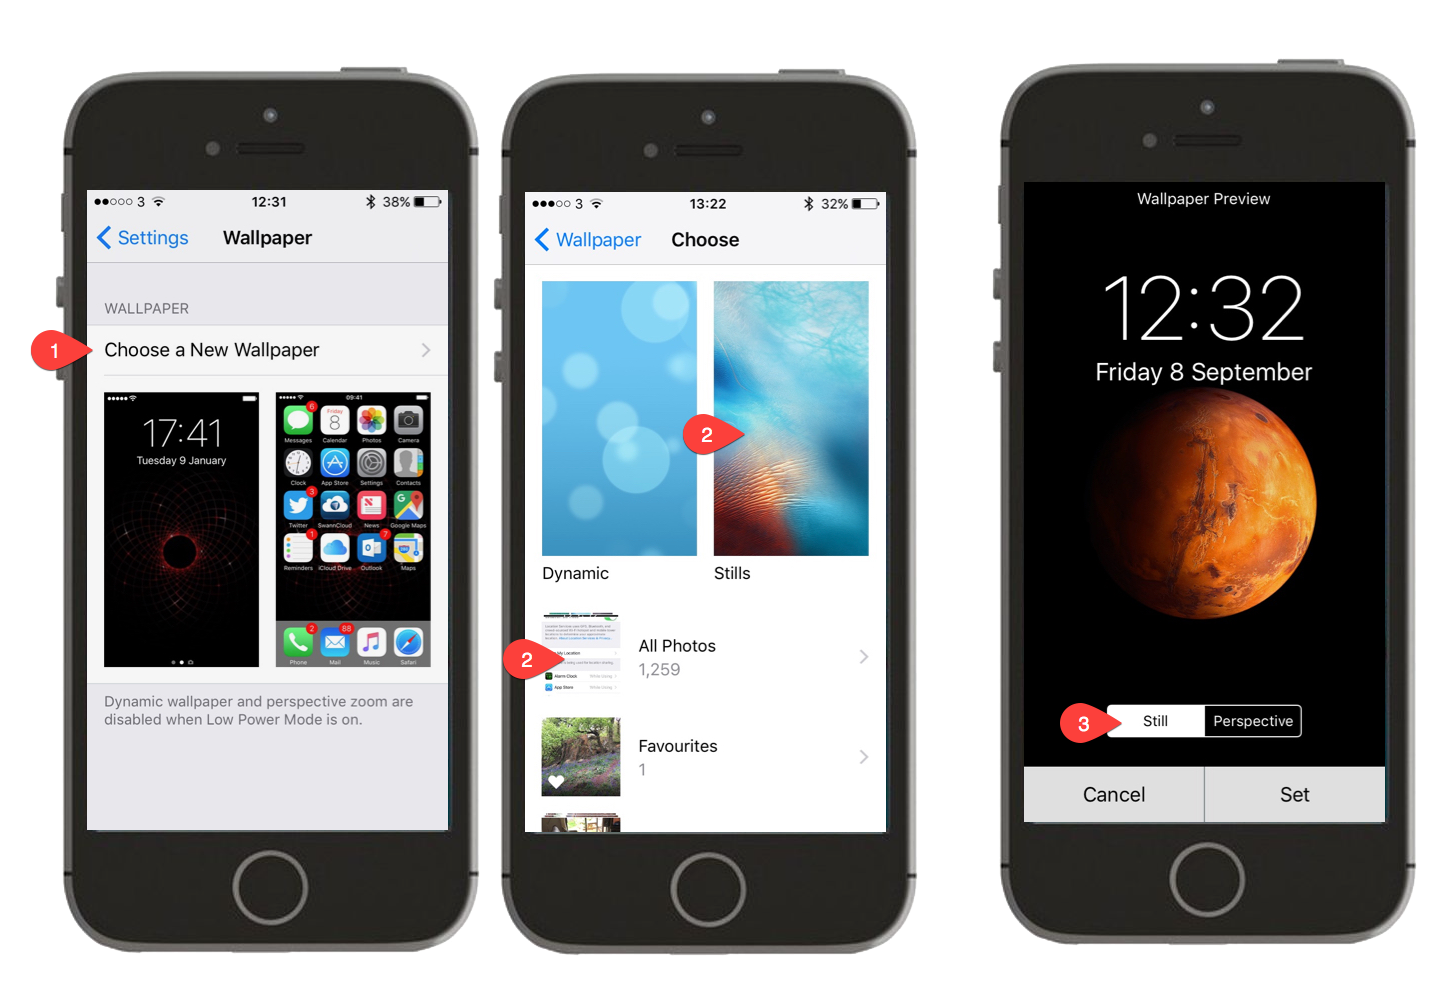 Screenshots showing how to set wallpaper on an iPhone